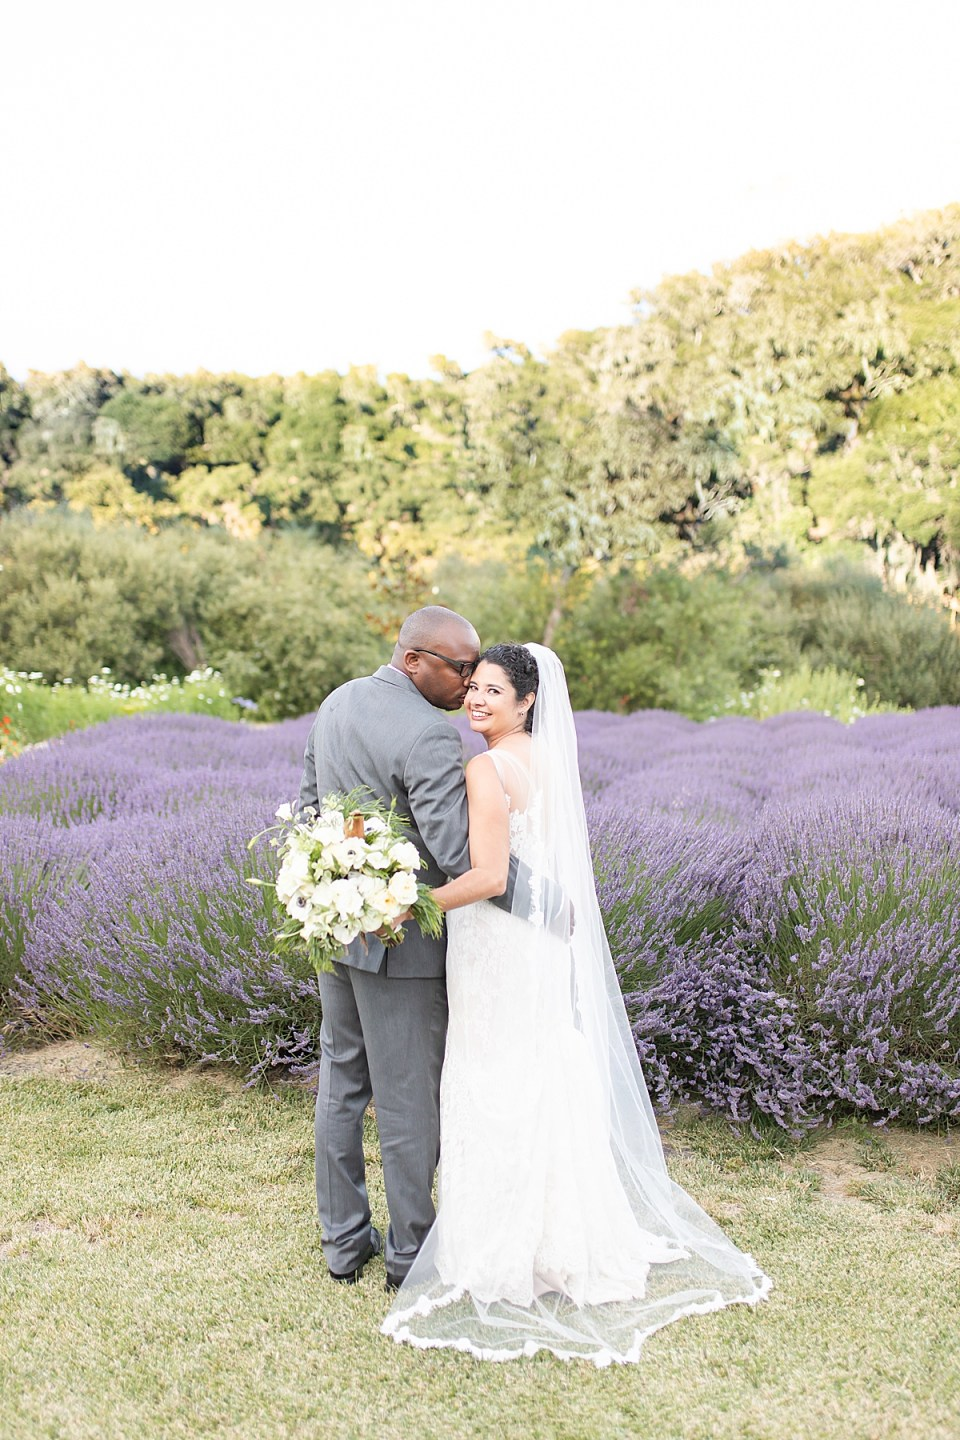 Brandi smiling back at the camera and Victor smiling at his bride in front of the lavender fields.